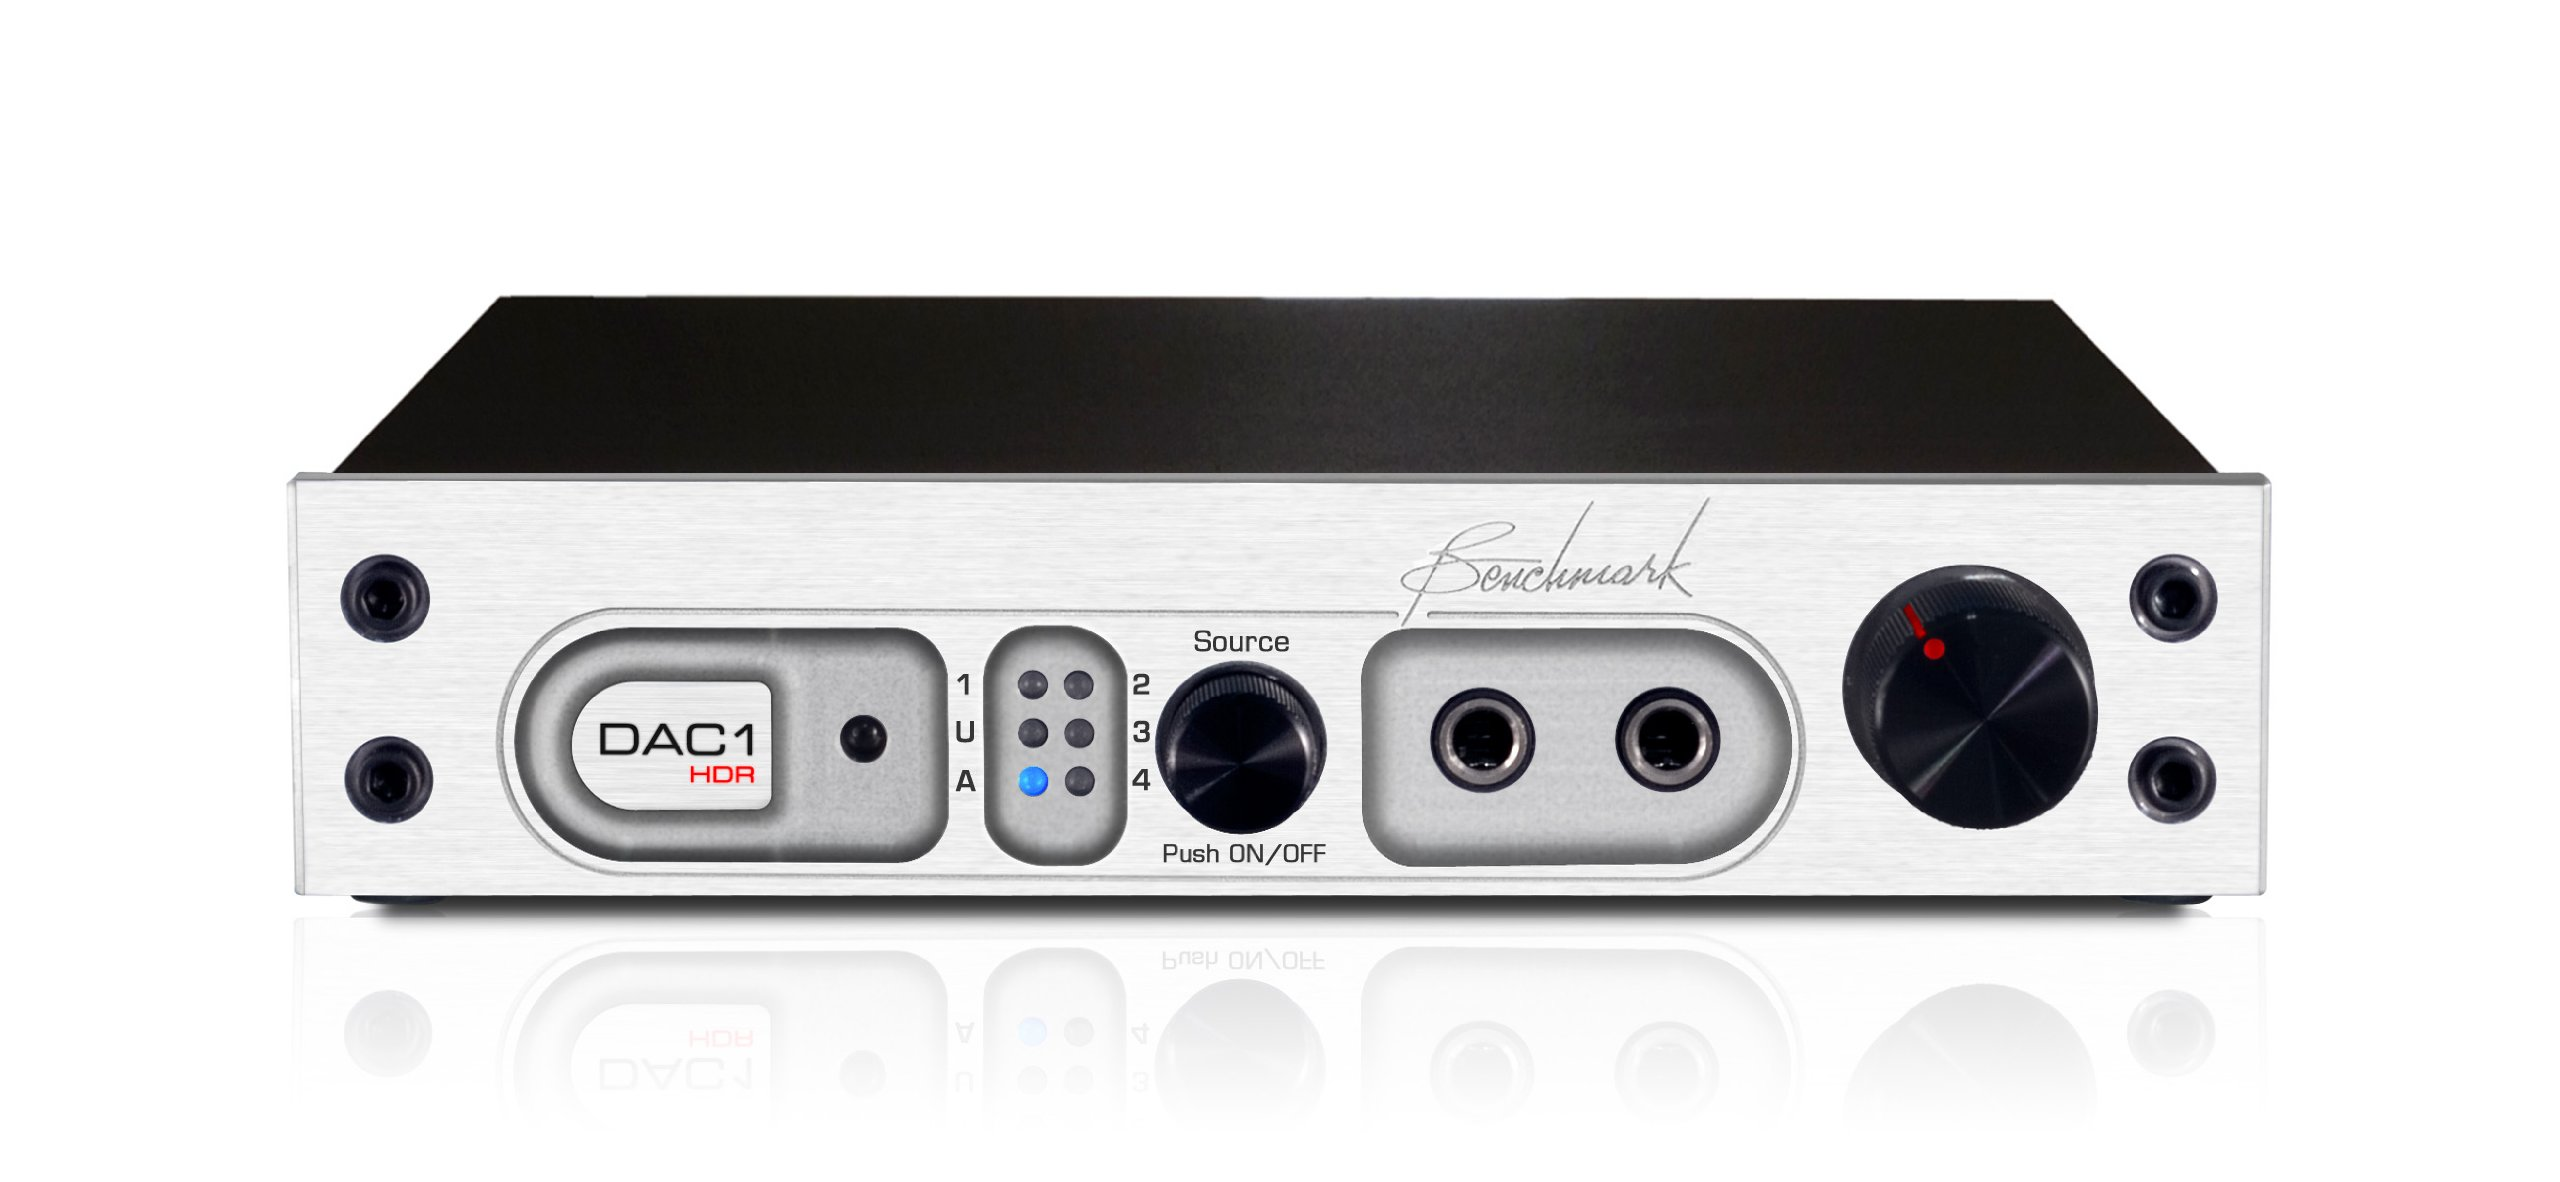 Benchmark DAC1 HDR Silver with Remote Control by Benchmark